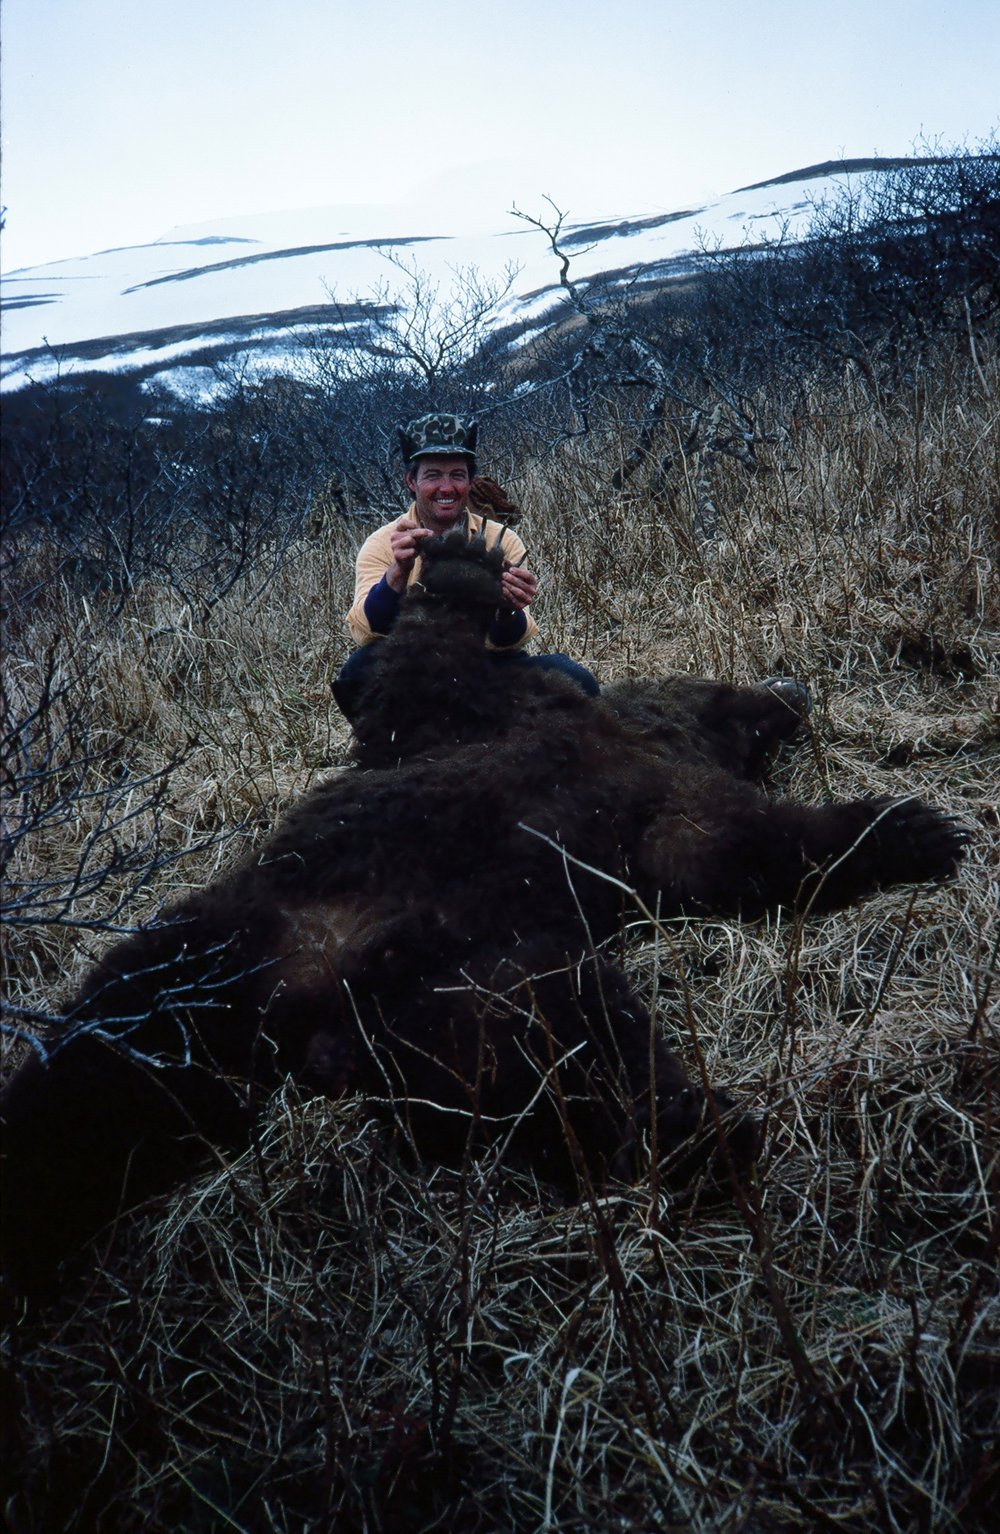 John's a happy hunter showing the bear's enormous paw.